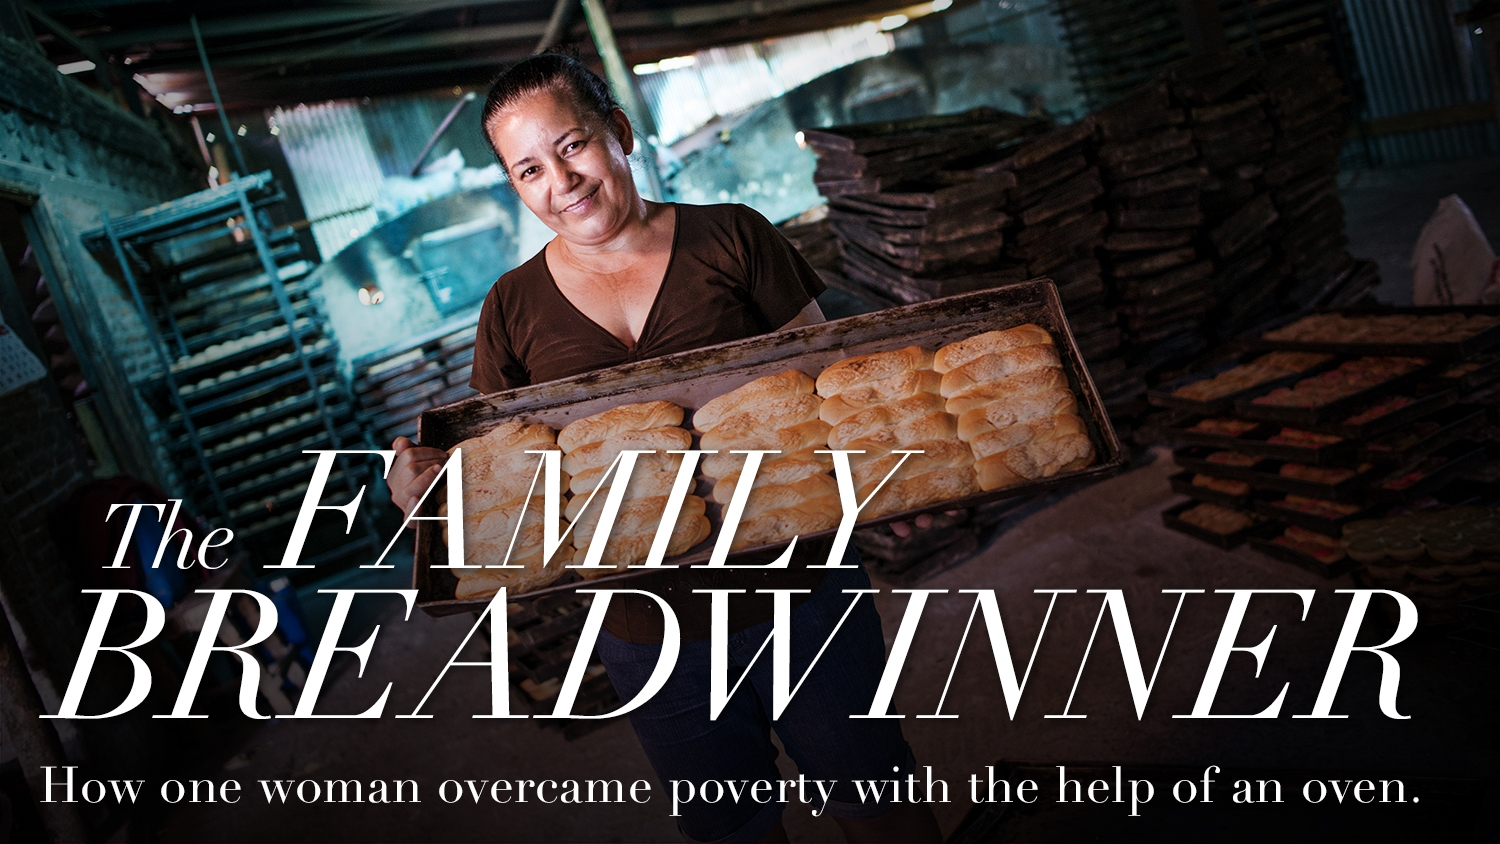 Breadwinner E-News Image Large